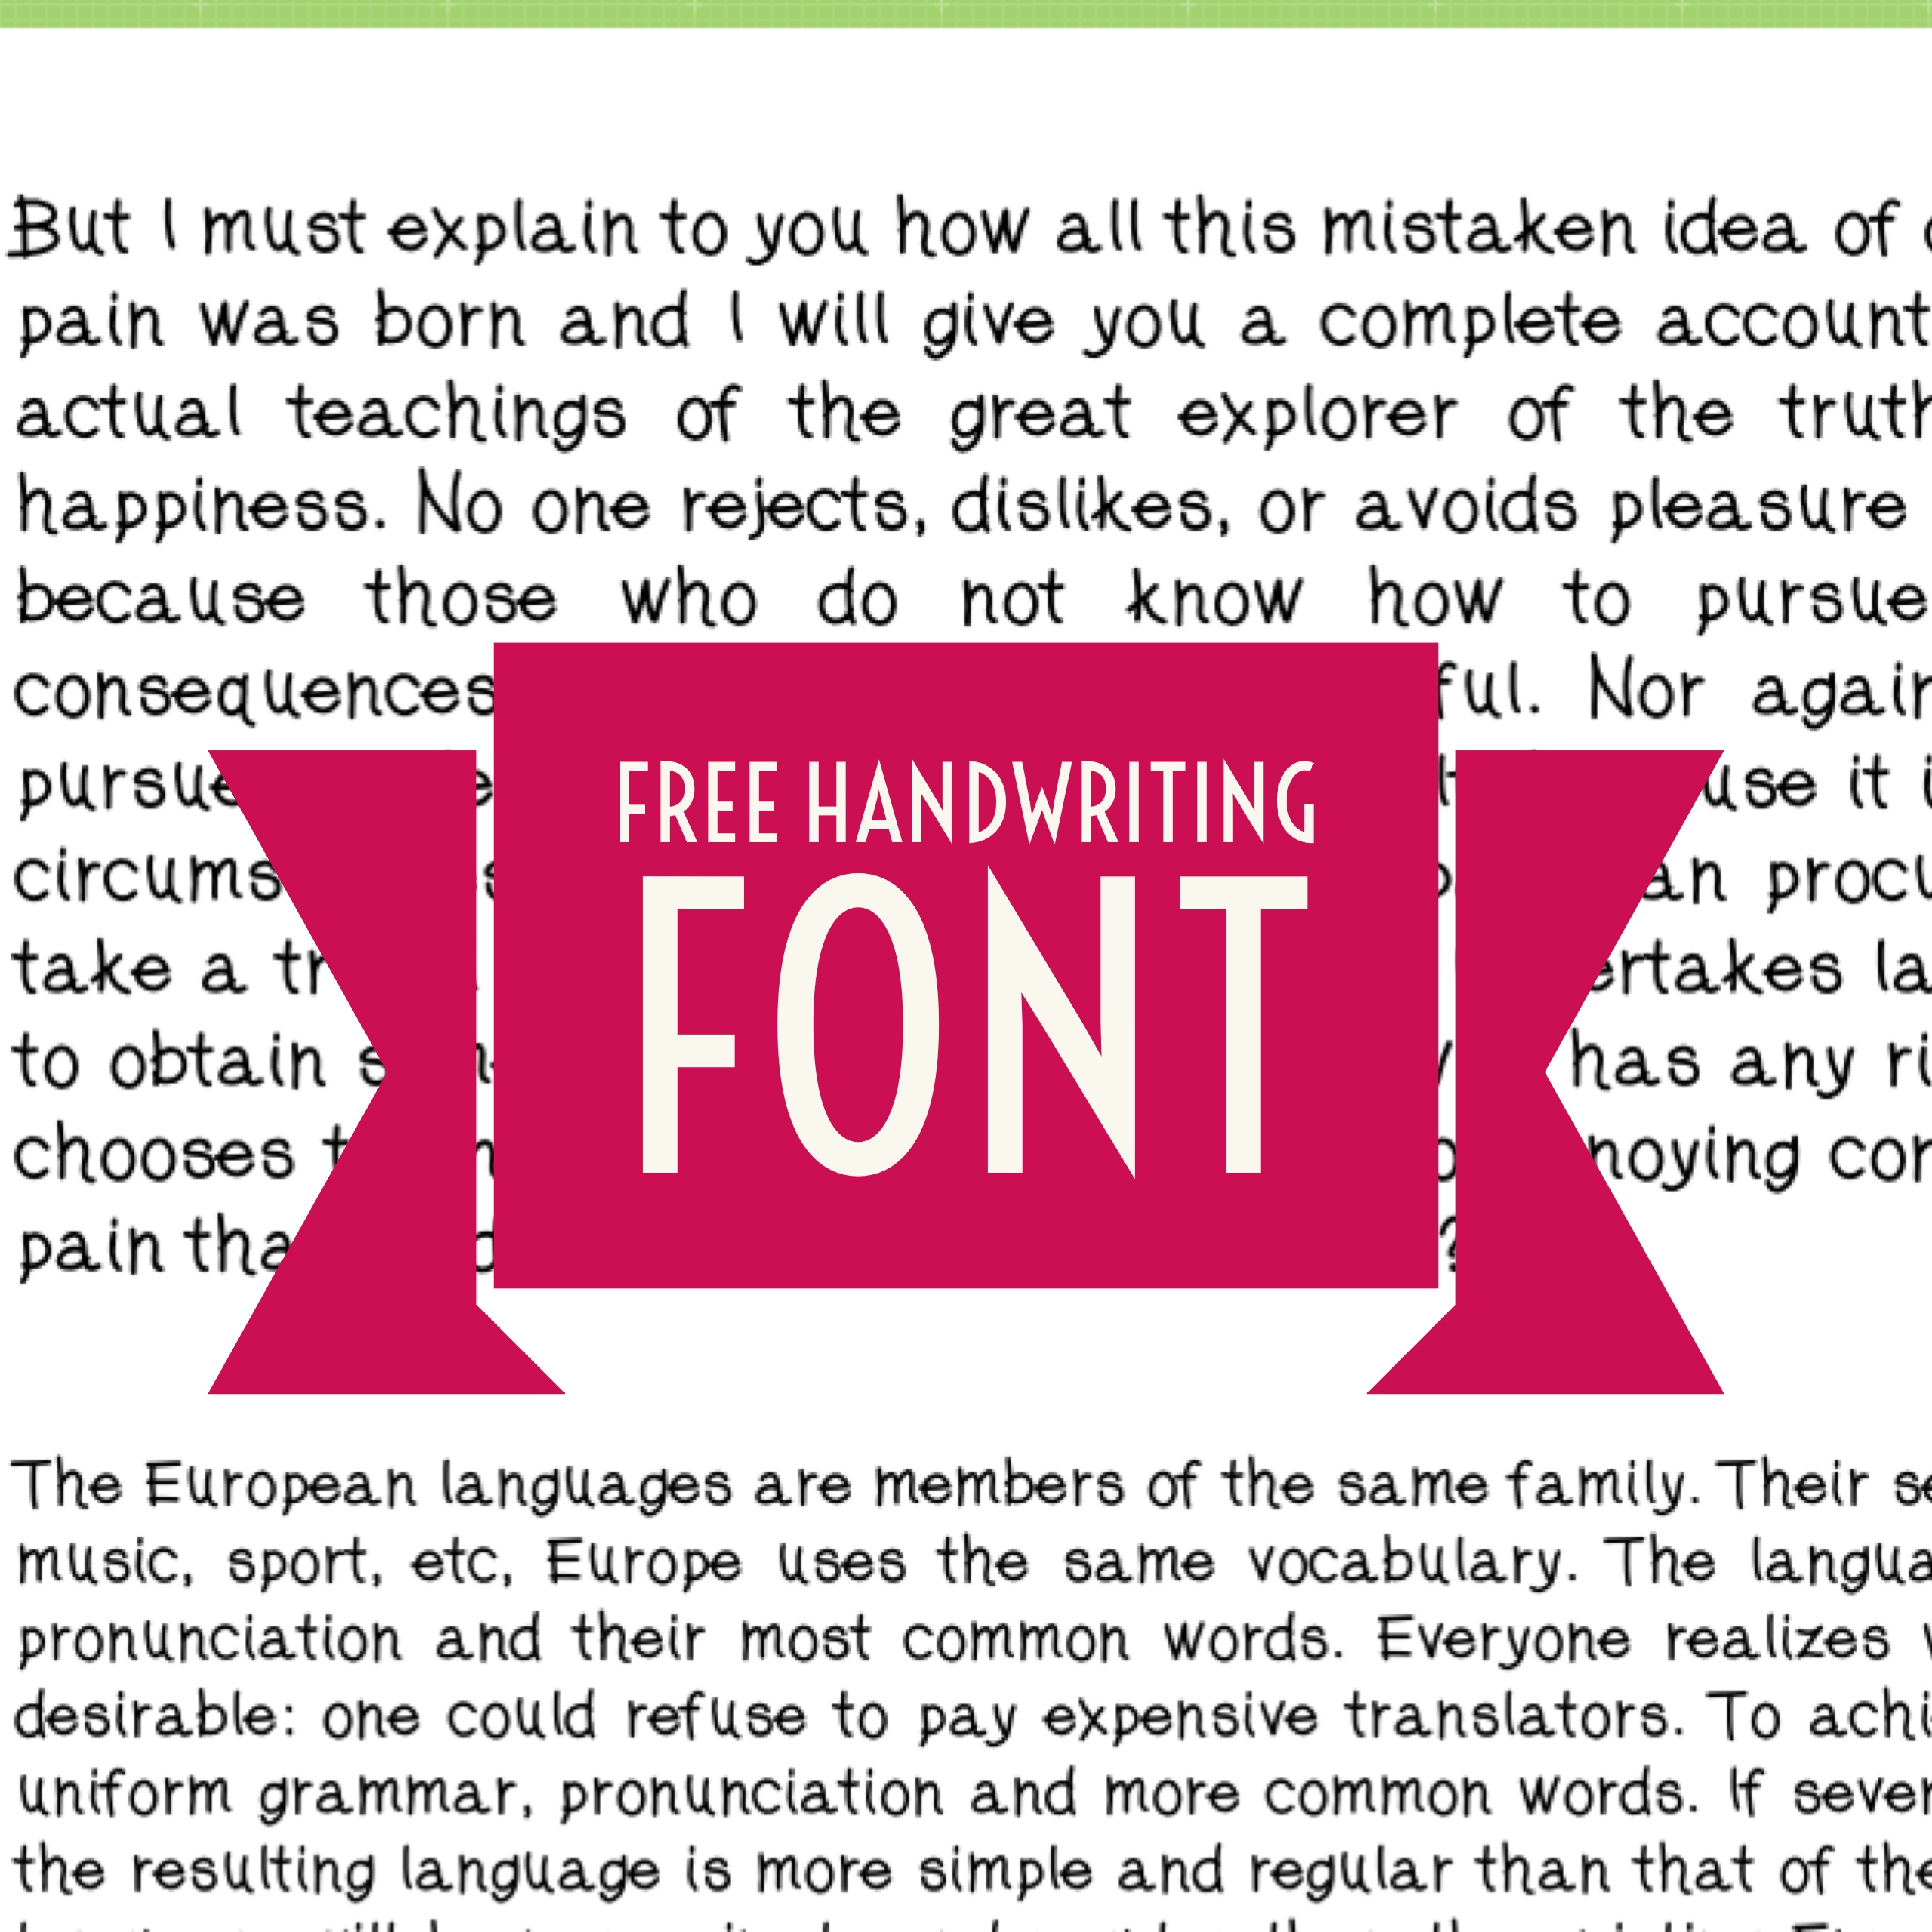 Erika's Handwriting Font